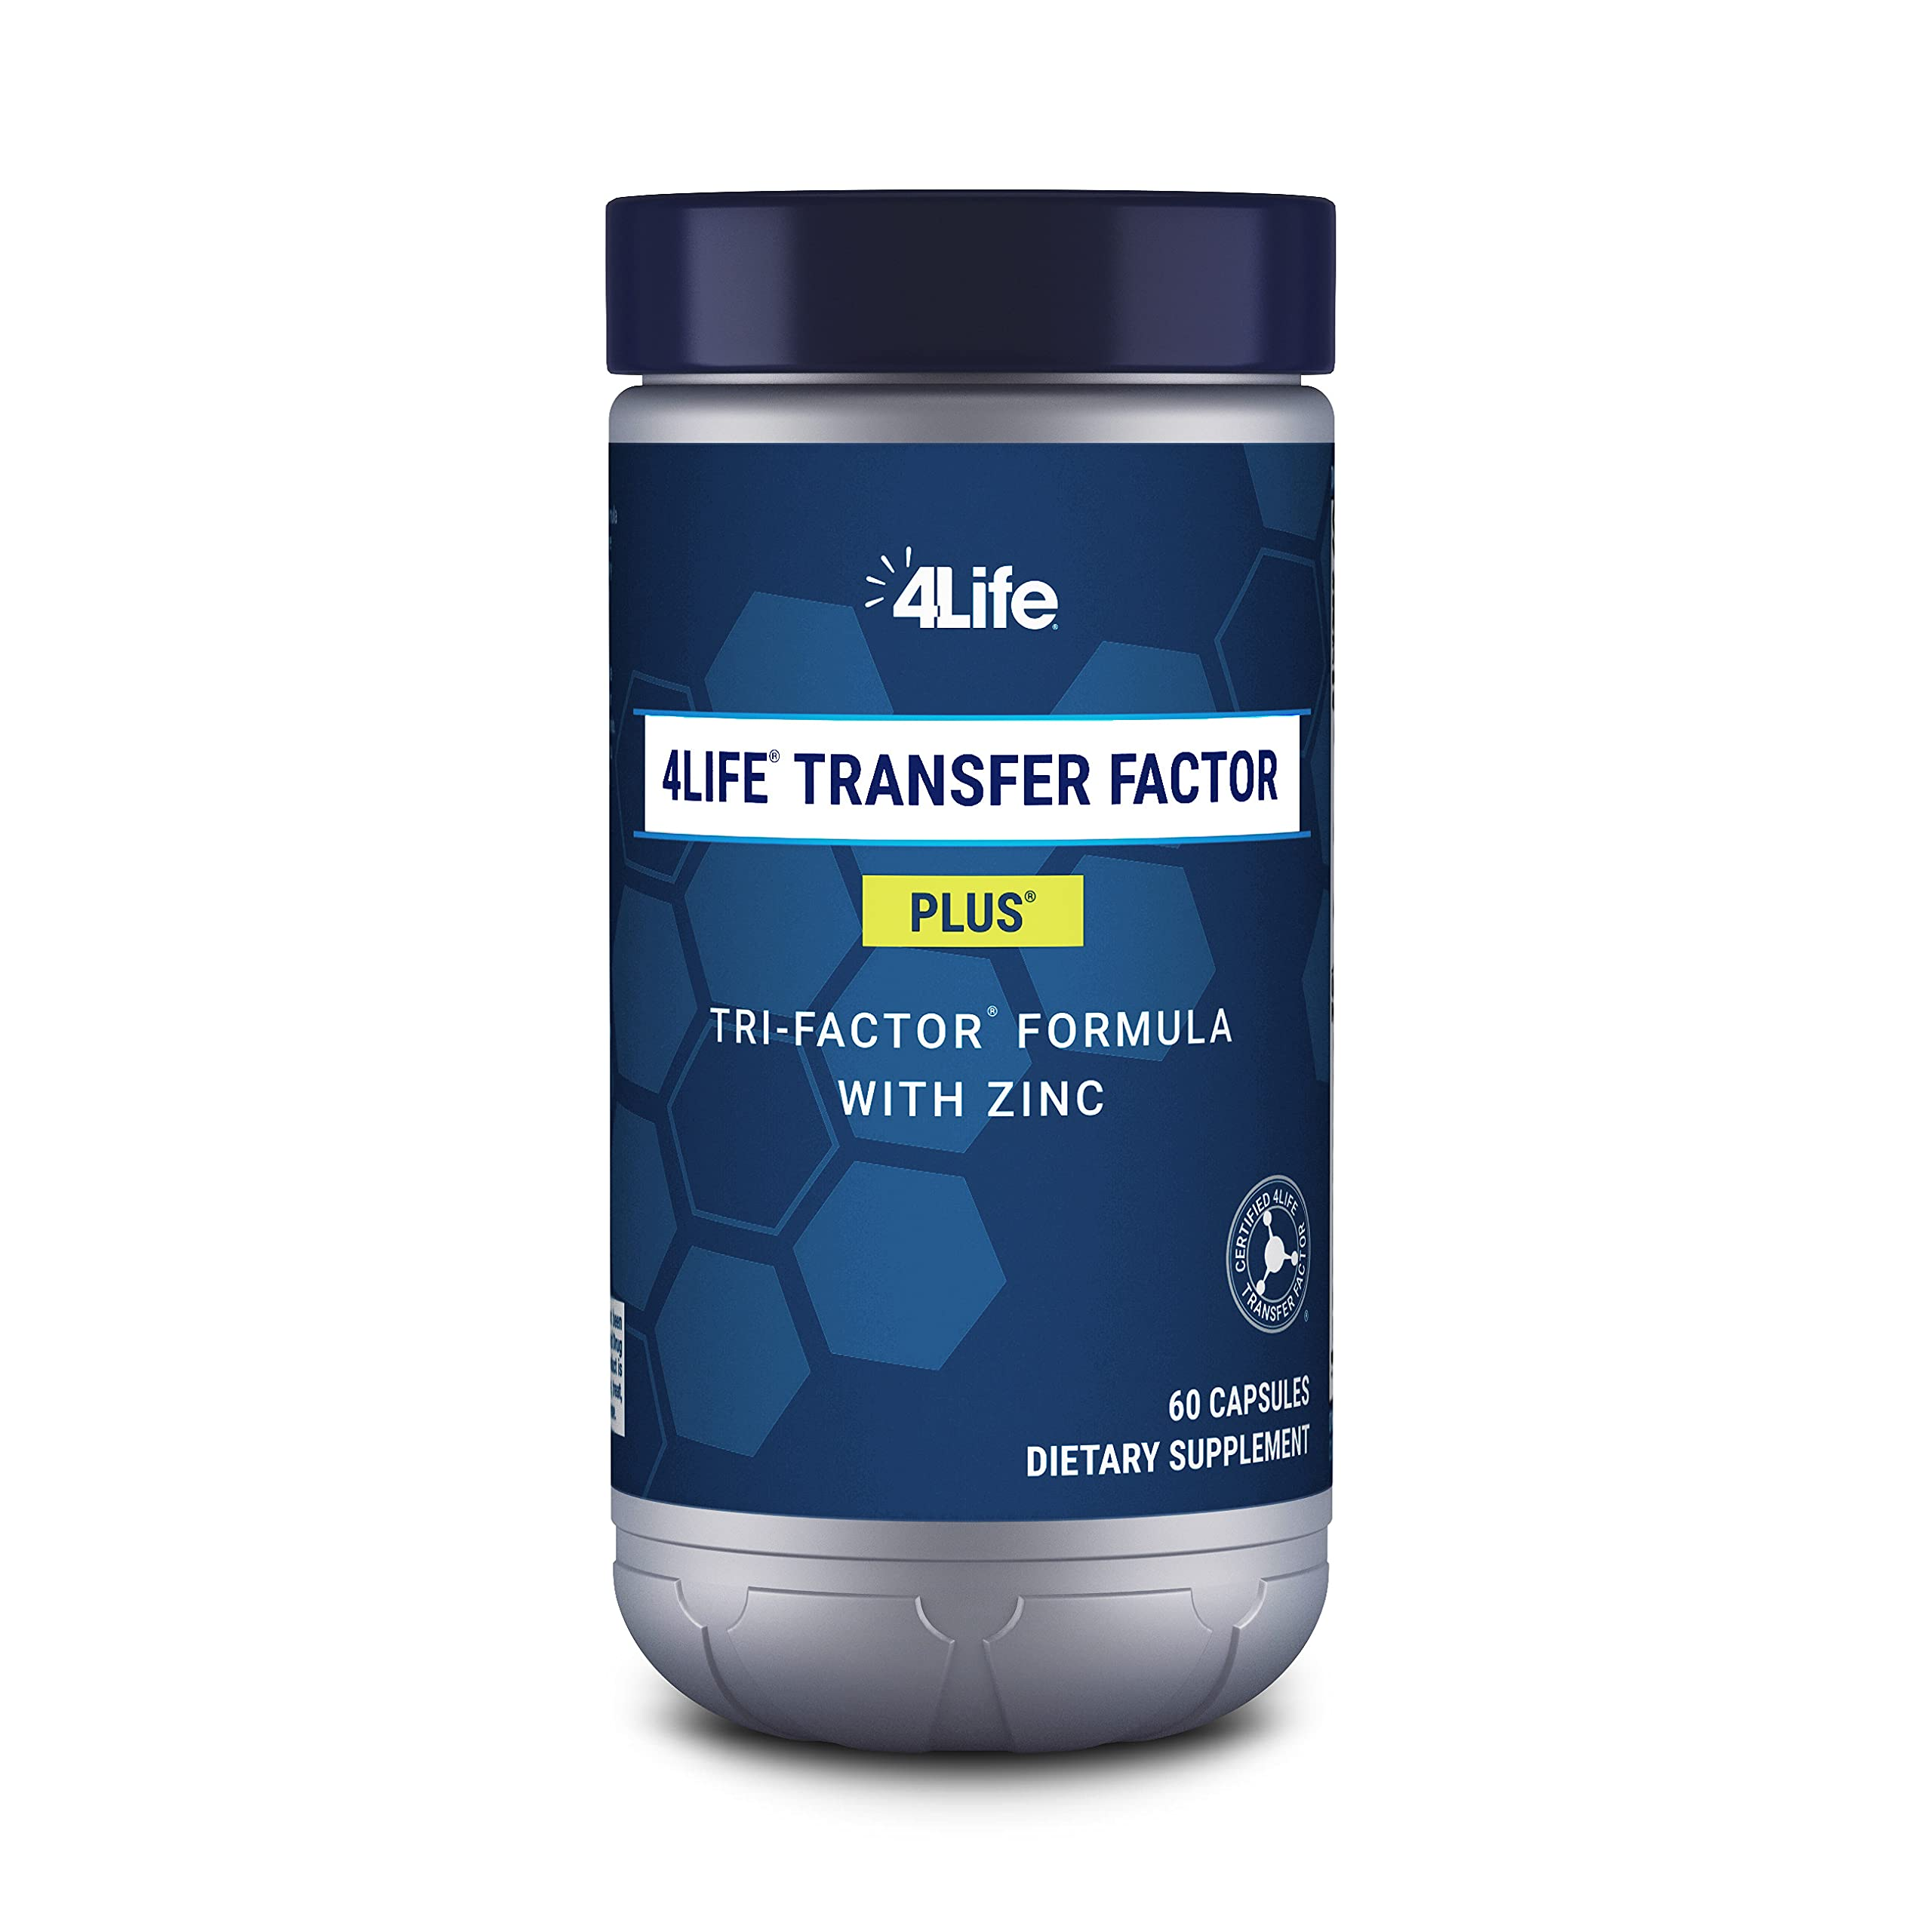 4Life Transfer Factor Plus Tri-Factor Formula - Immune System Support with Zinc, Super Mushroom Blend (Maitake, Shiitake, Agaricus), and Extracts of Cow Colostrum and Chicken Egg Yolk - 60 Capsules